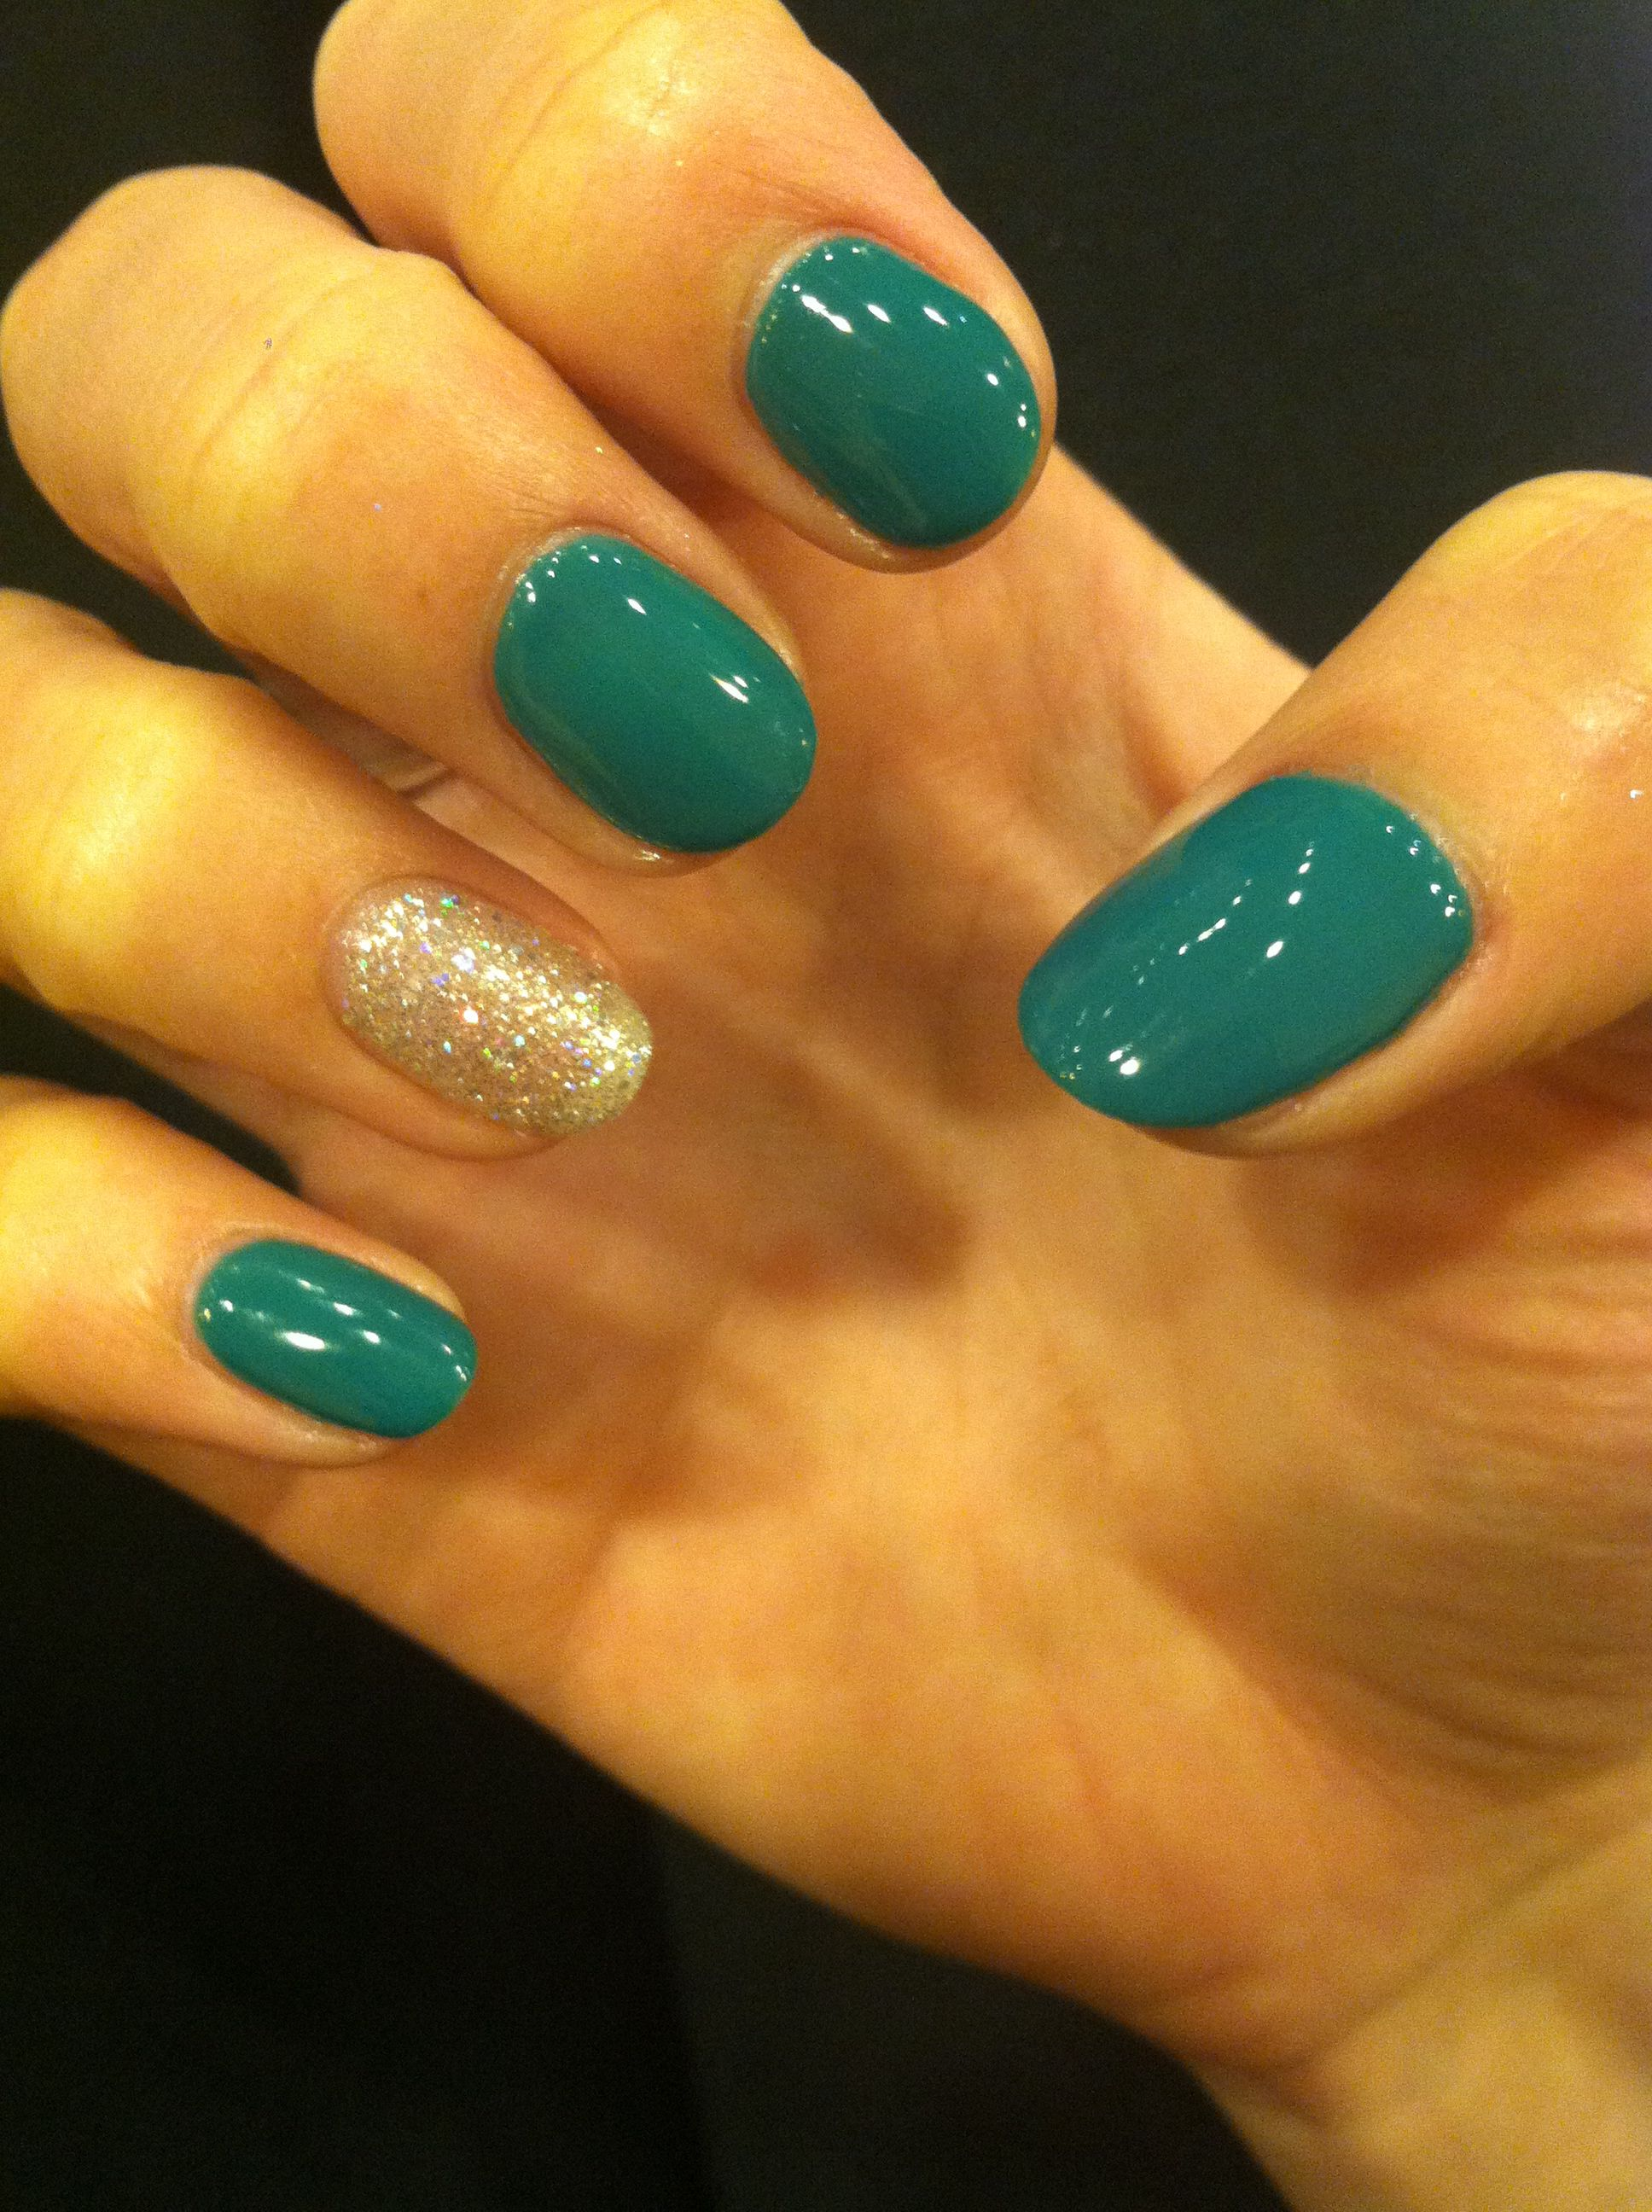 Emerald Green And Sparkly Silver Gel Nails For The Holidays Emerald Nails Nails Gel Nails